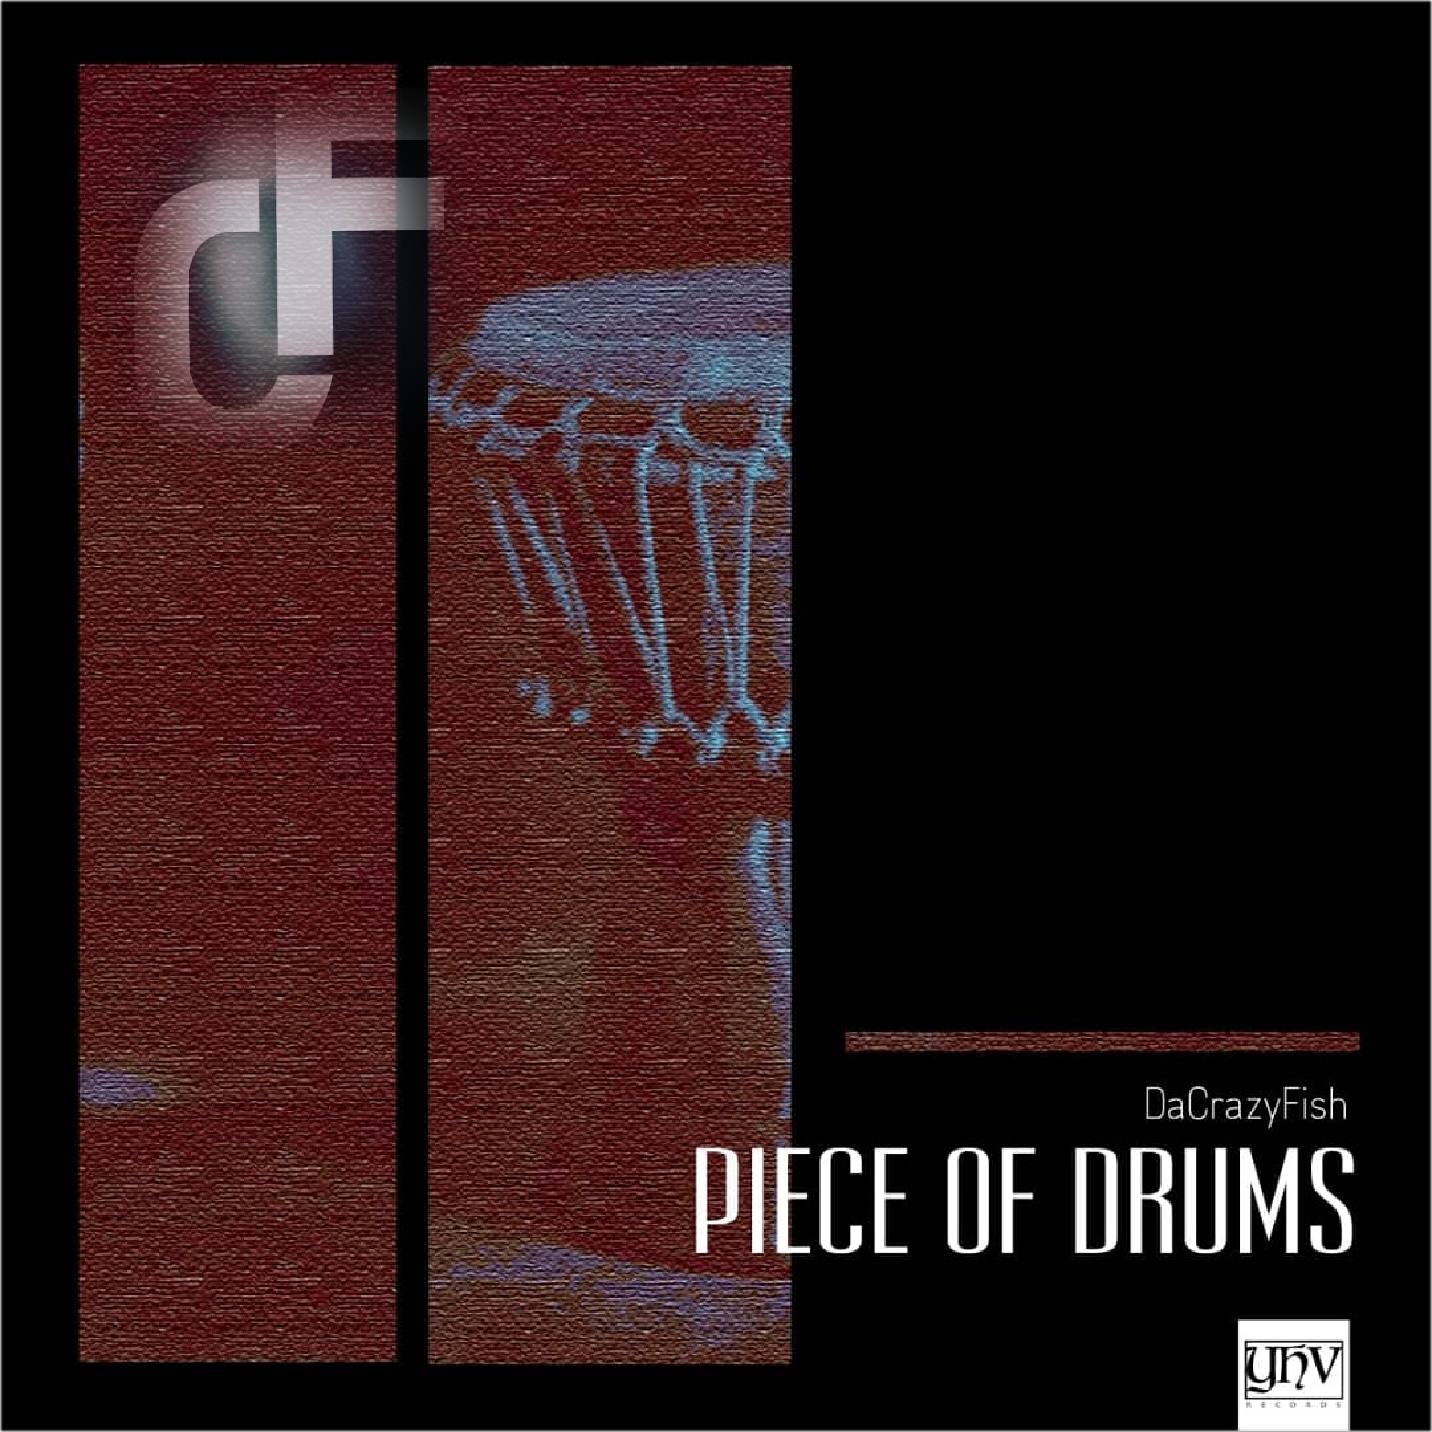 """Piece of Drums"" - DaCrazyFish"